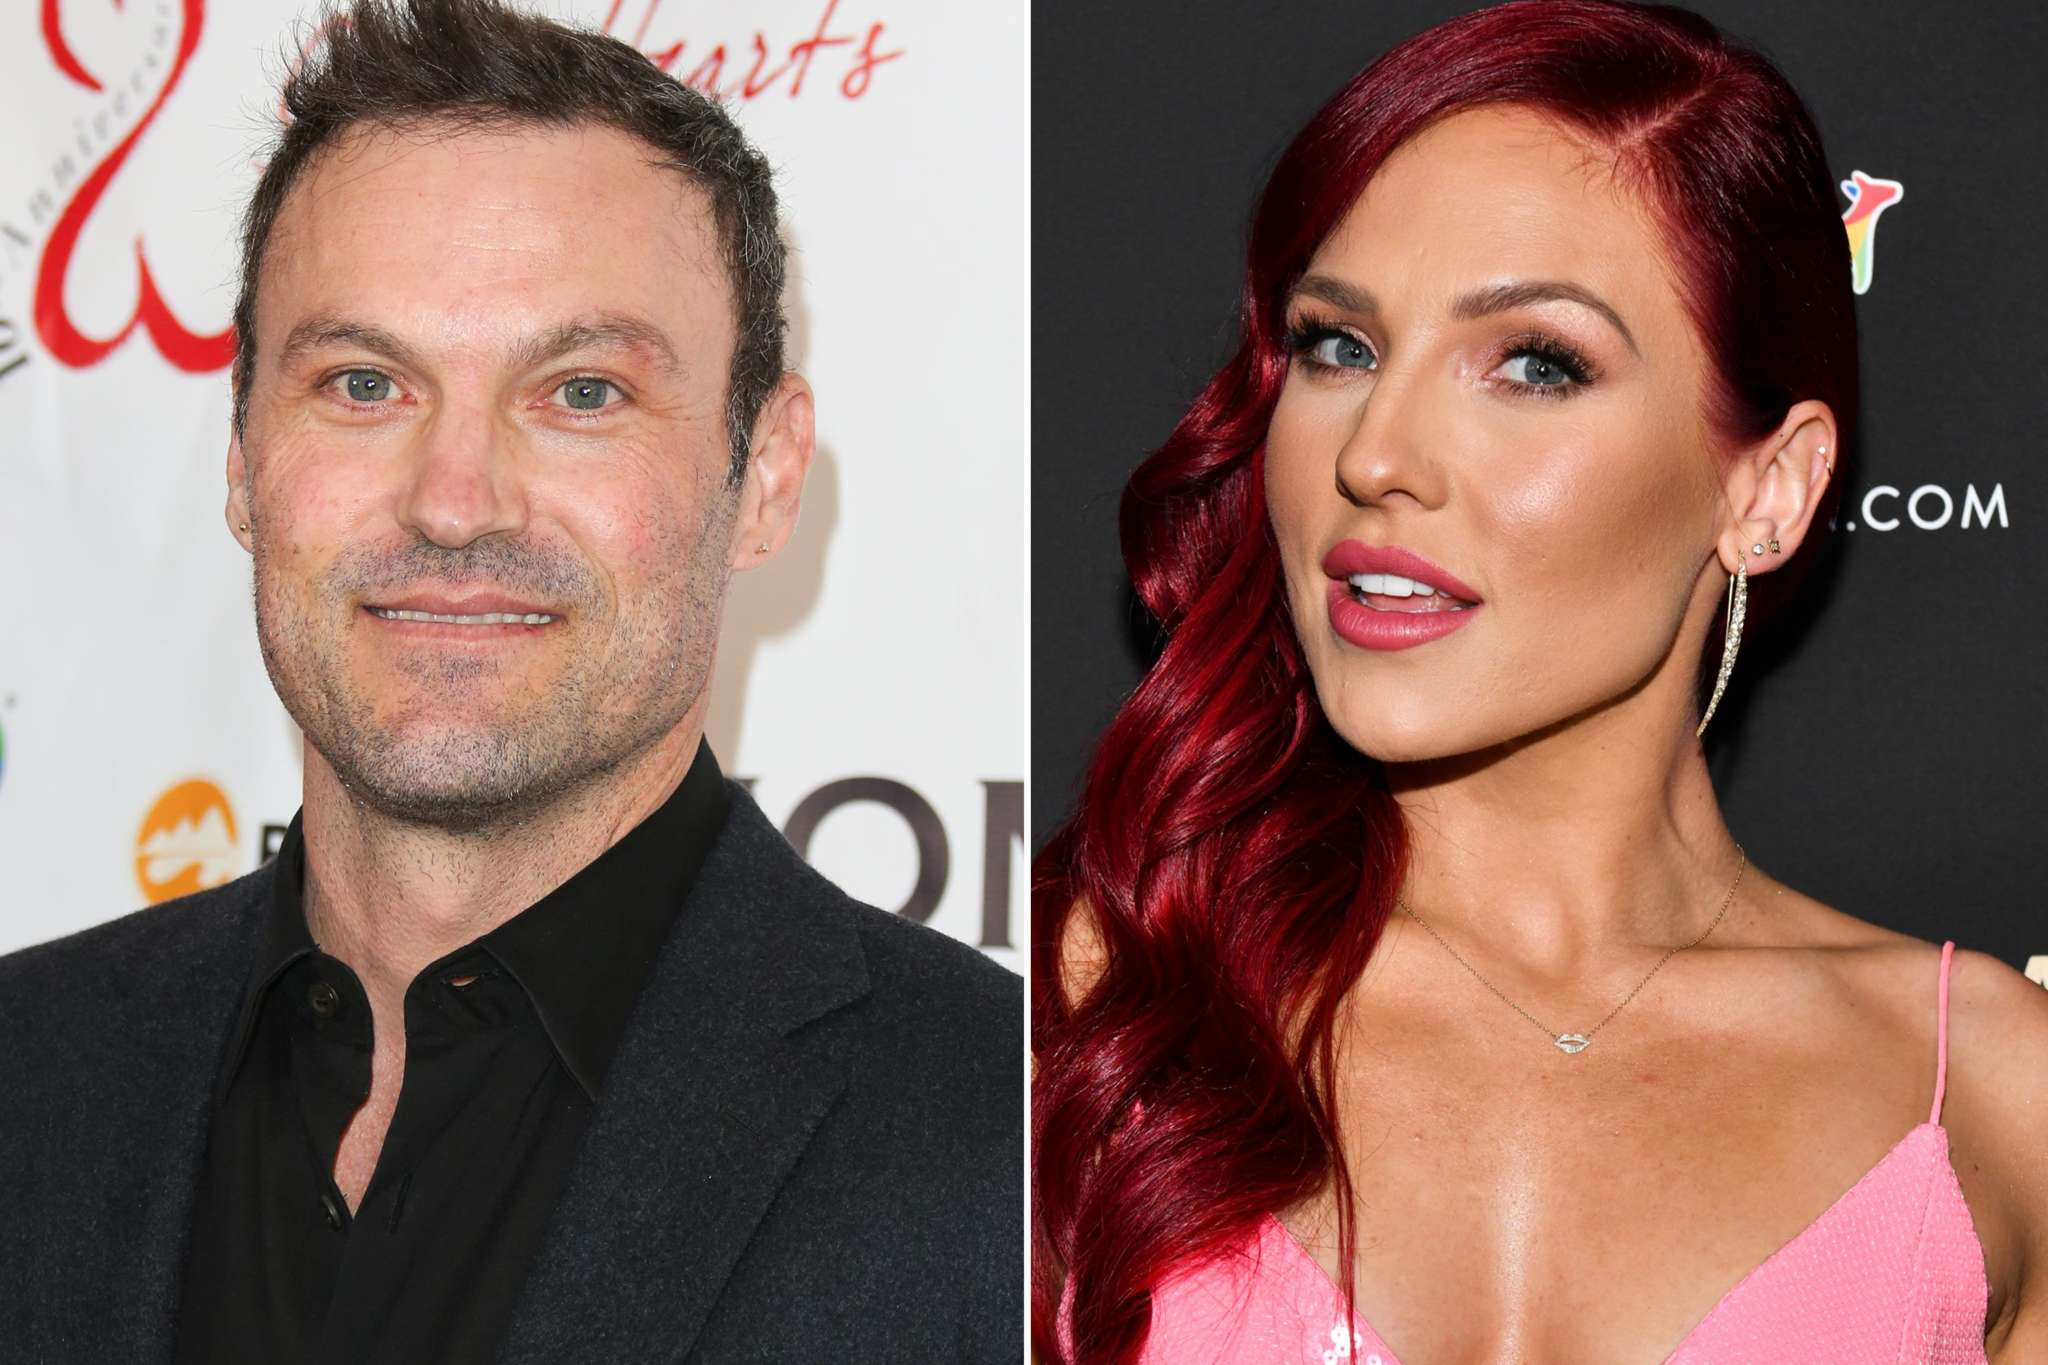 brian-austin-green-and-sharna-burgess-heres-how-megan-fox-reportedly-feels-about-her-ex-husband-moving-on